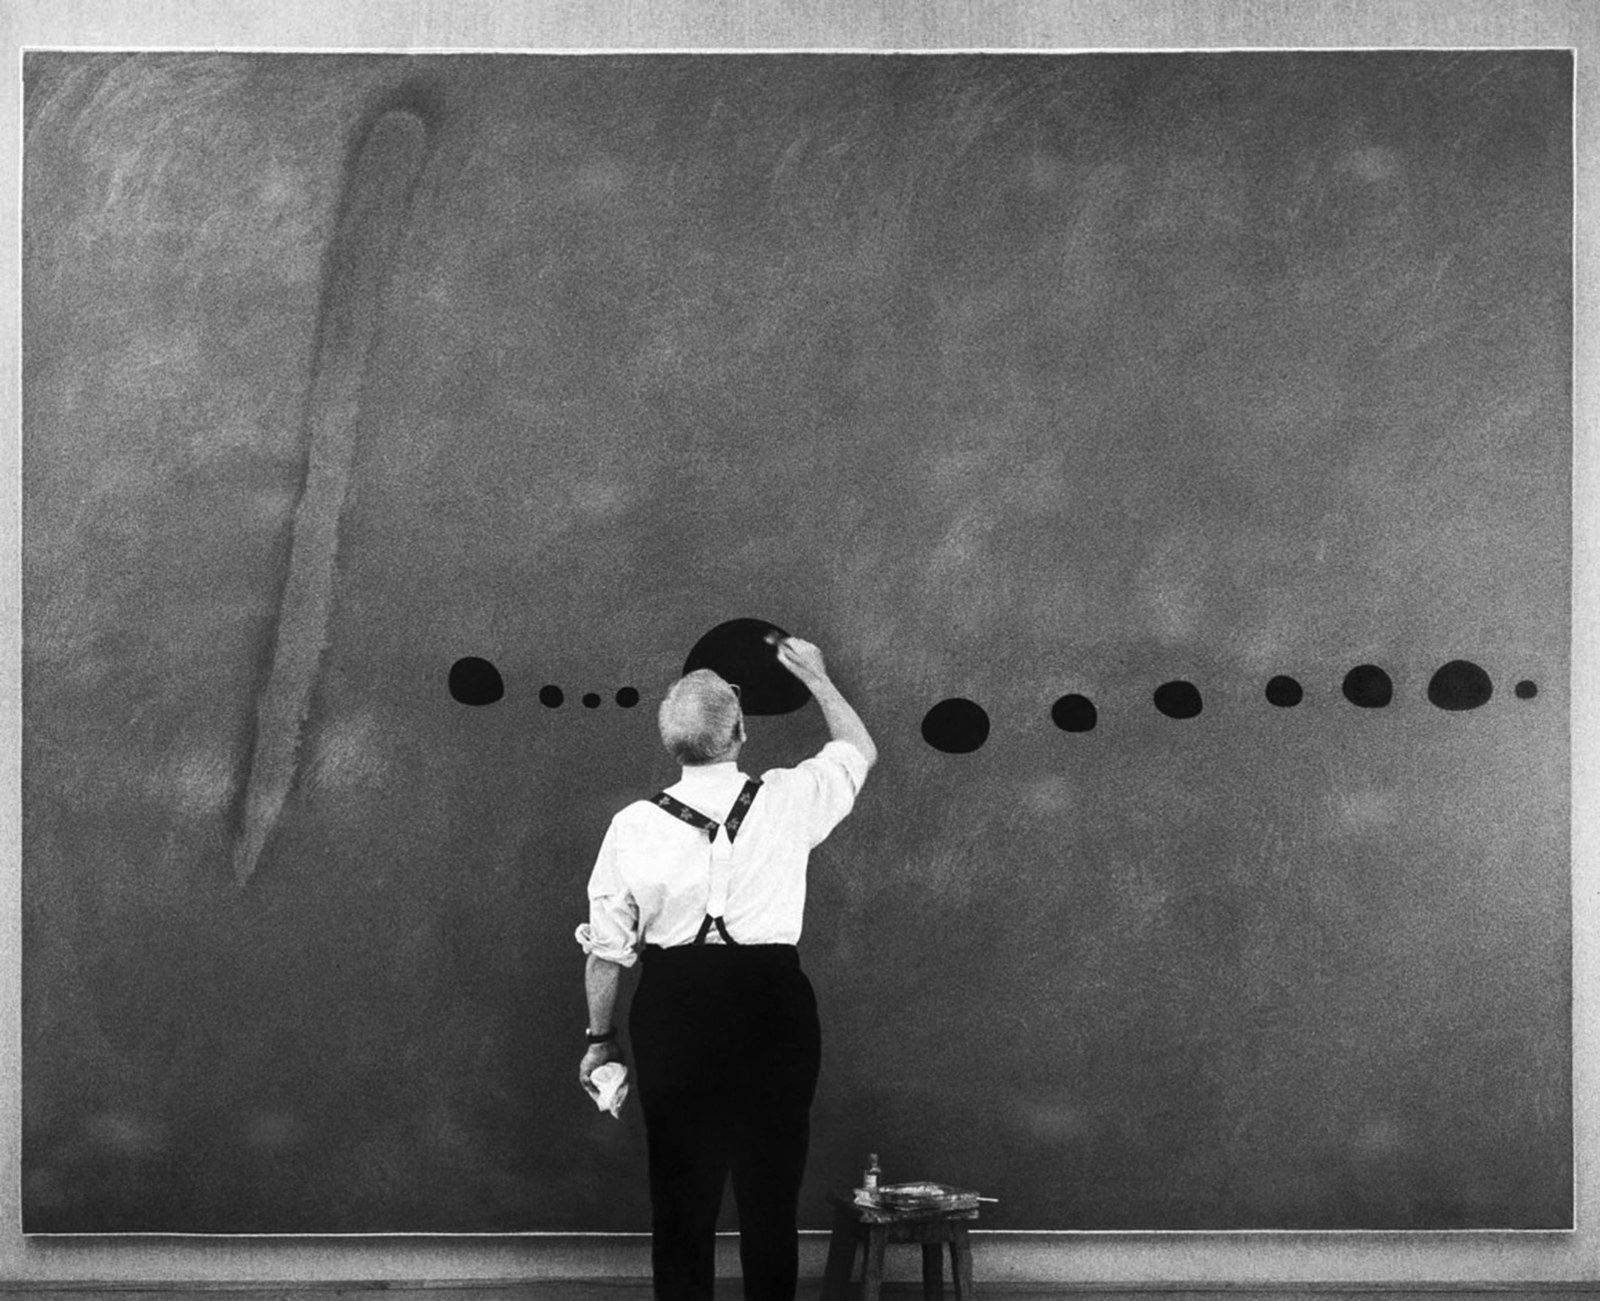 """Miro retouchant bleu (II)""  Anonyme -  Courtesy Galerie Maeght, Paris 1961"" Photo Successió Miró Archive"